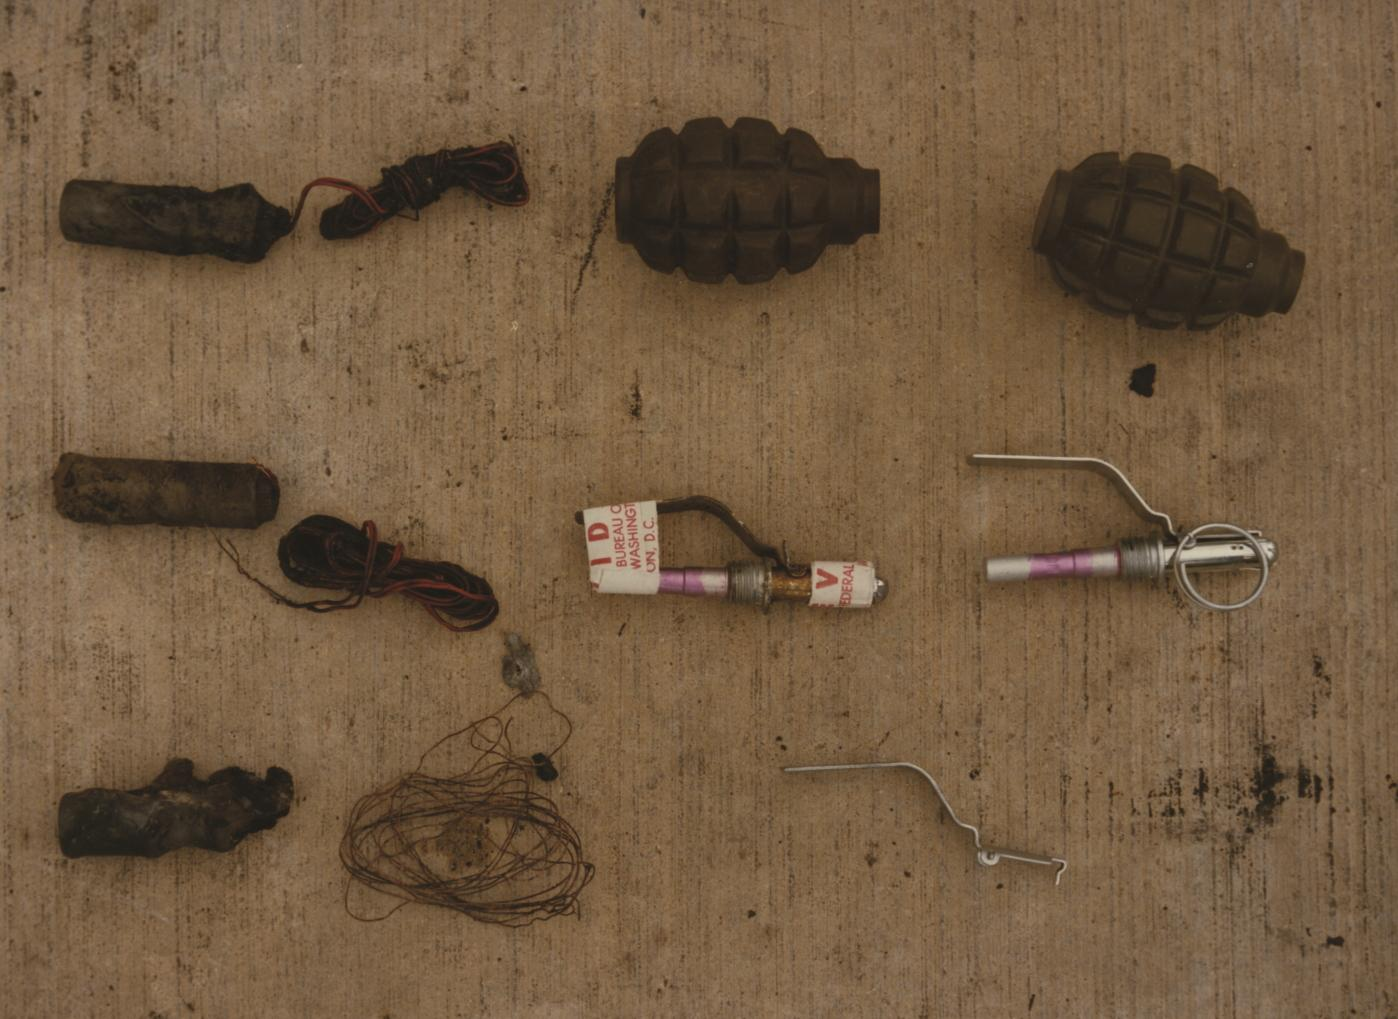 Some of the weapons found on board.